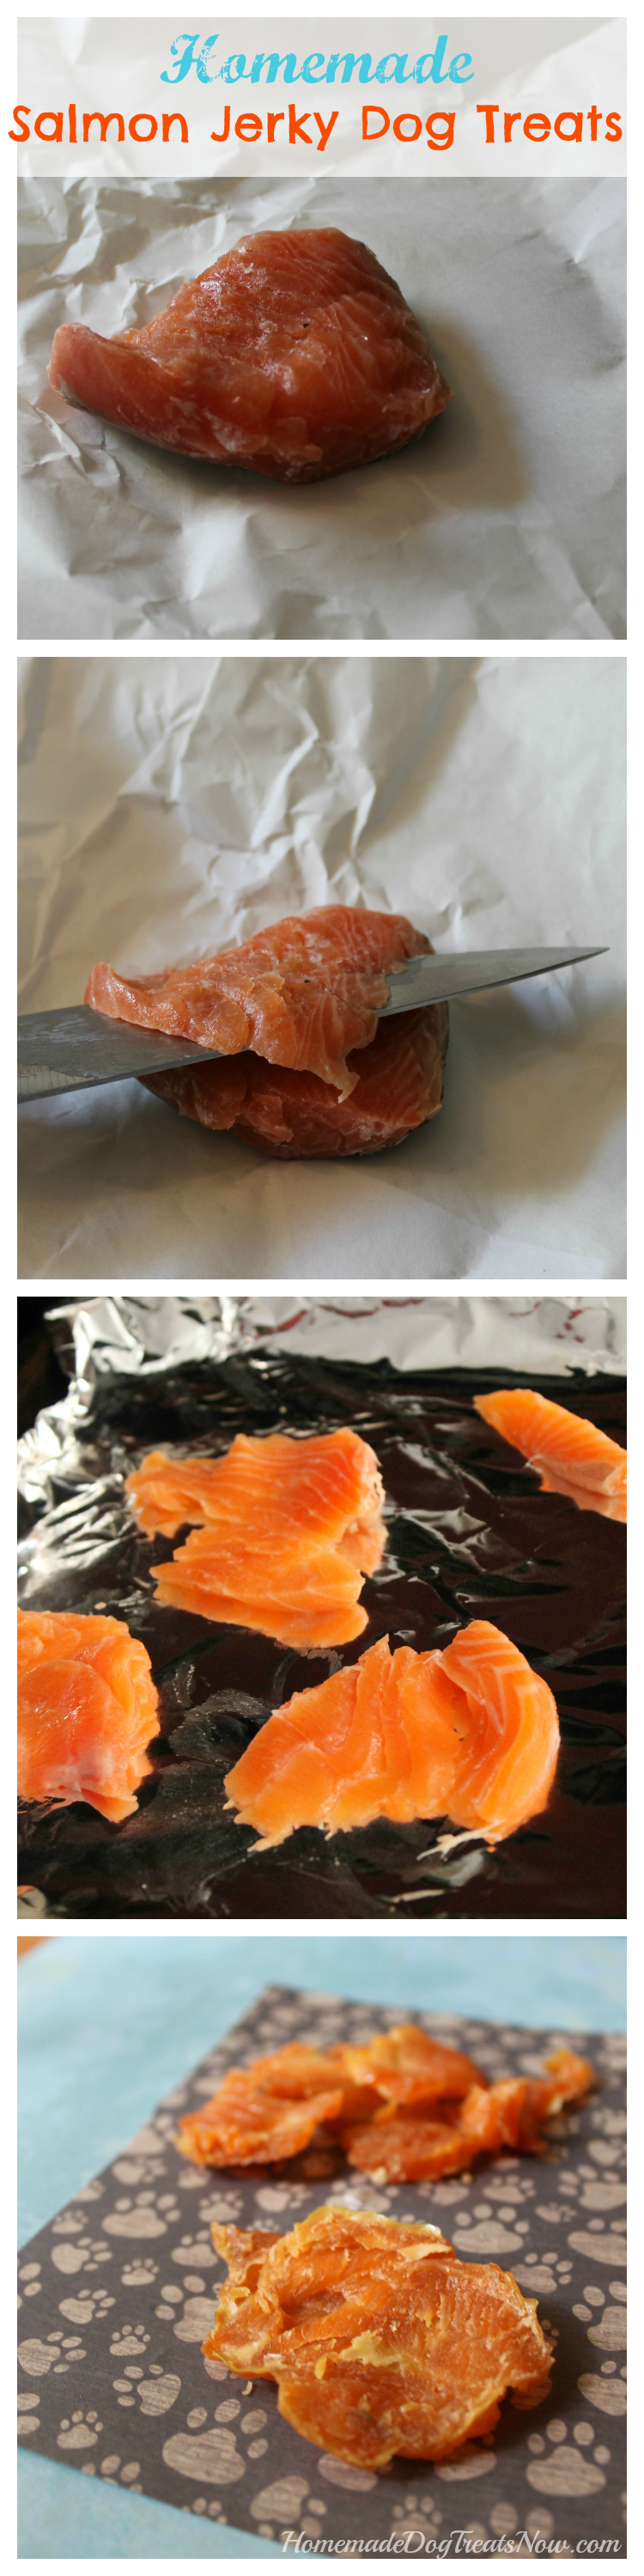 Easy Salmon Jerky Dog Treats